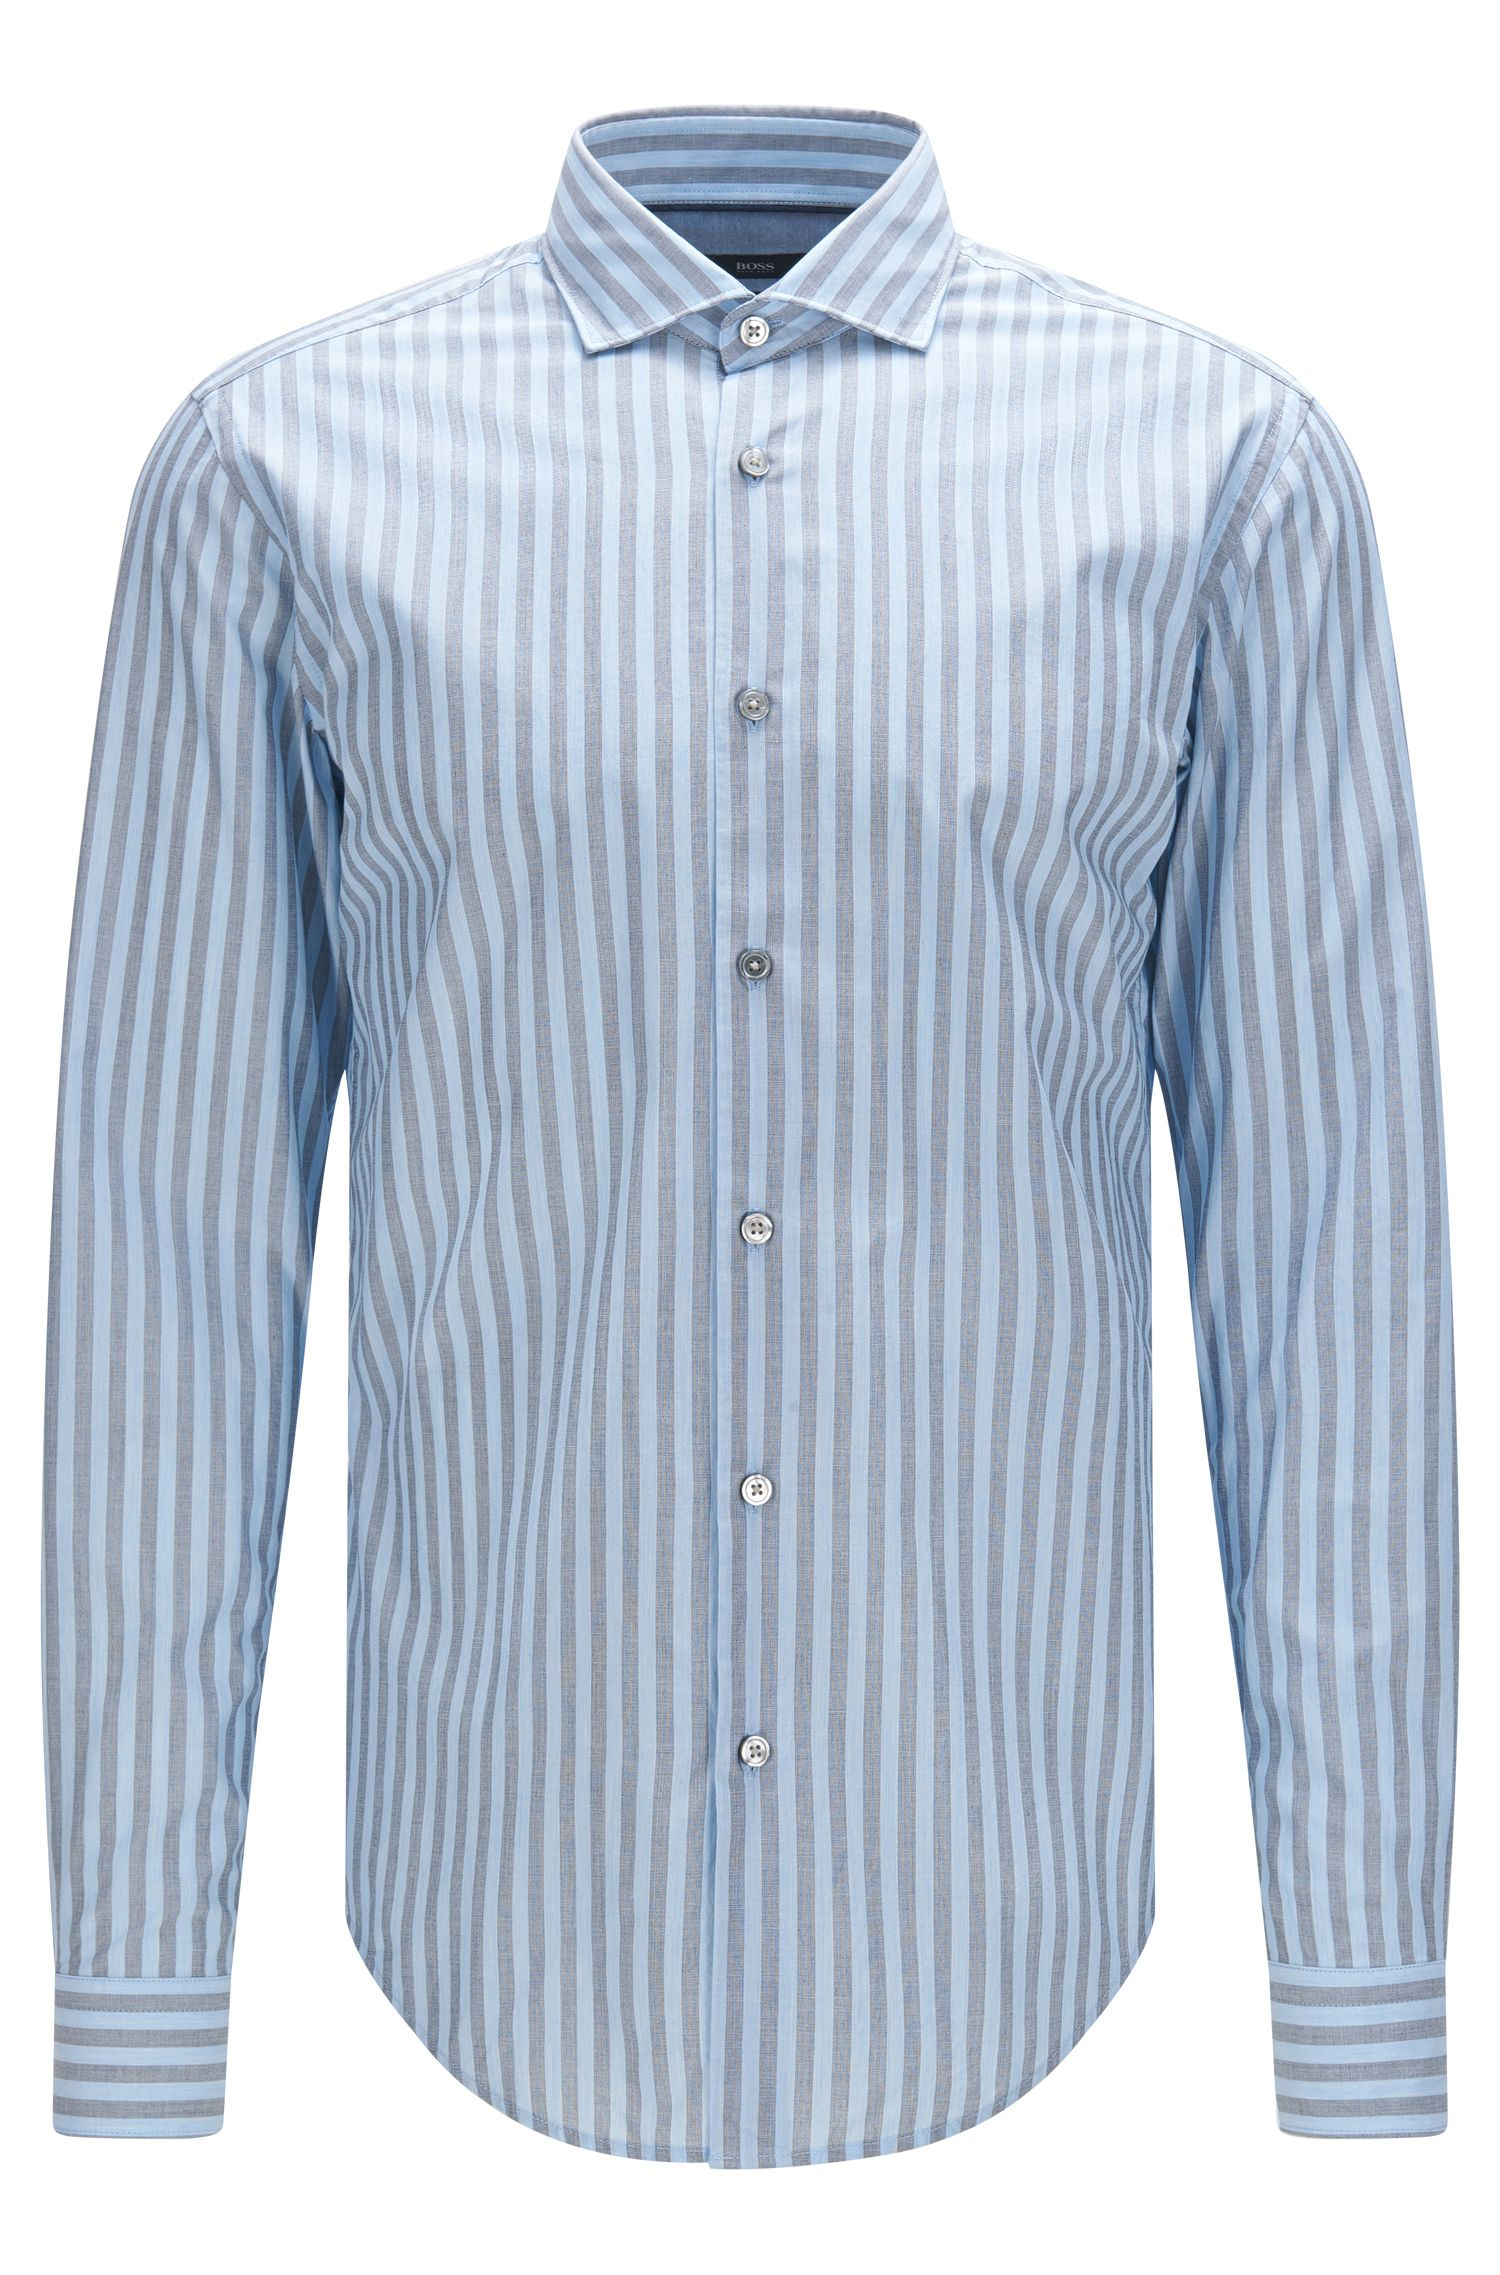 'Ridley' | Slim Fit, Cotton Striped Button Down Shirt